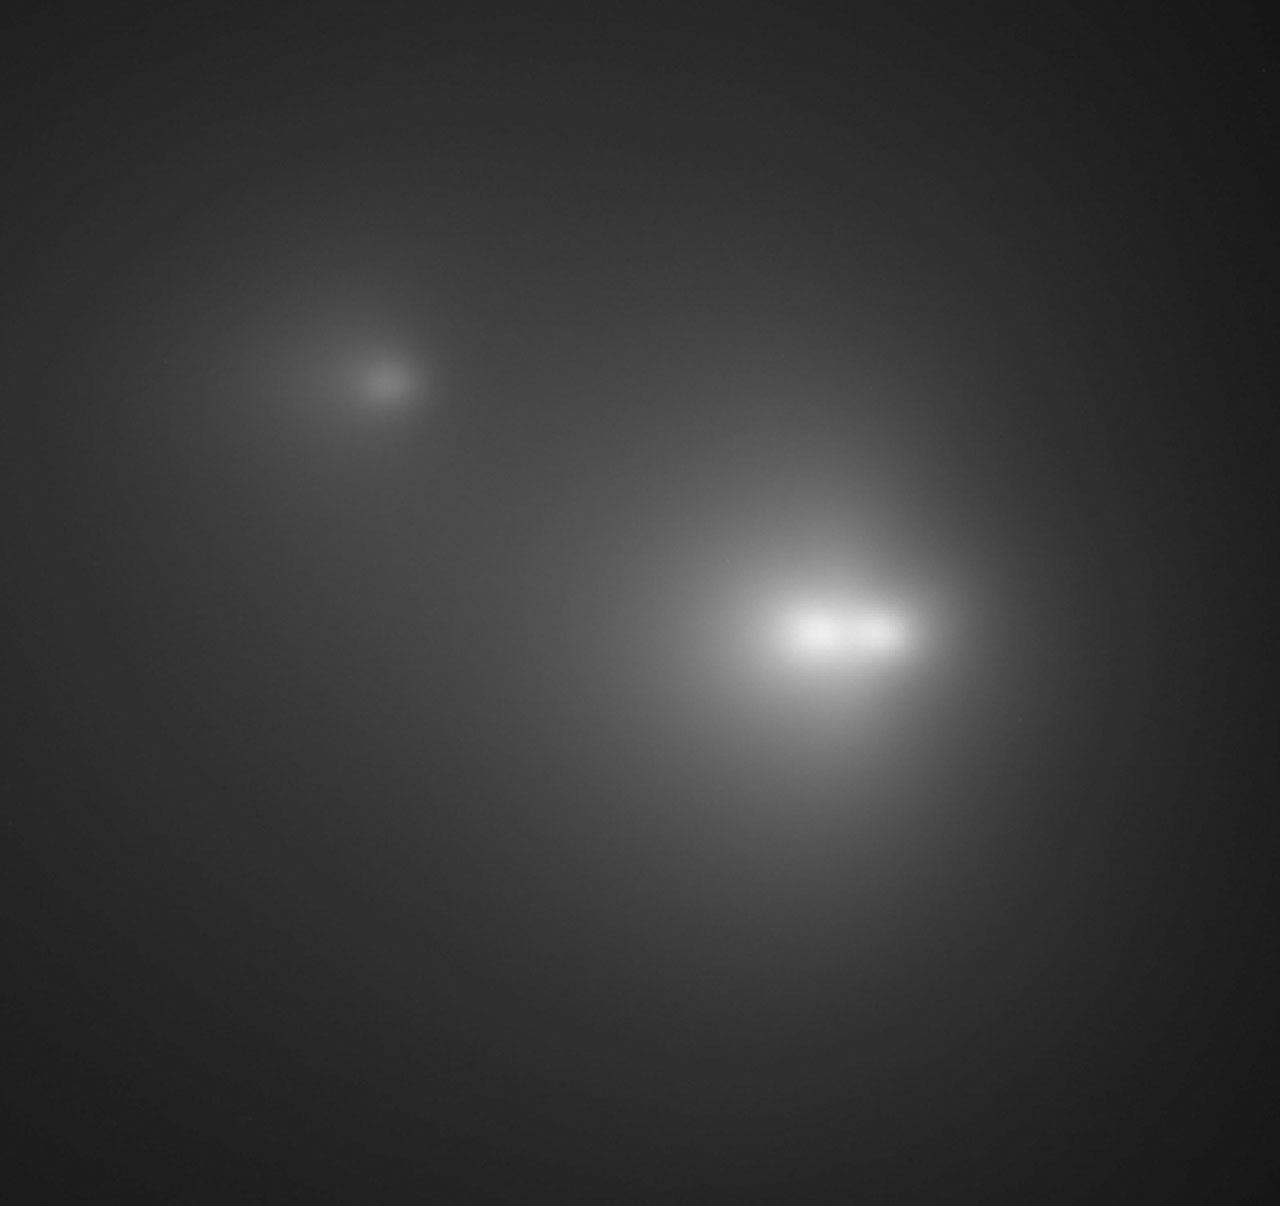 Three Nuclei of Comet LINEAR